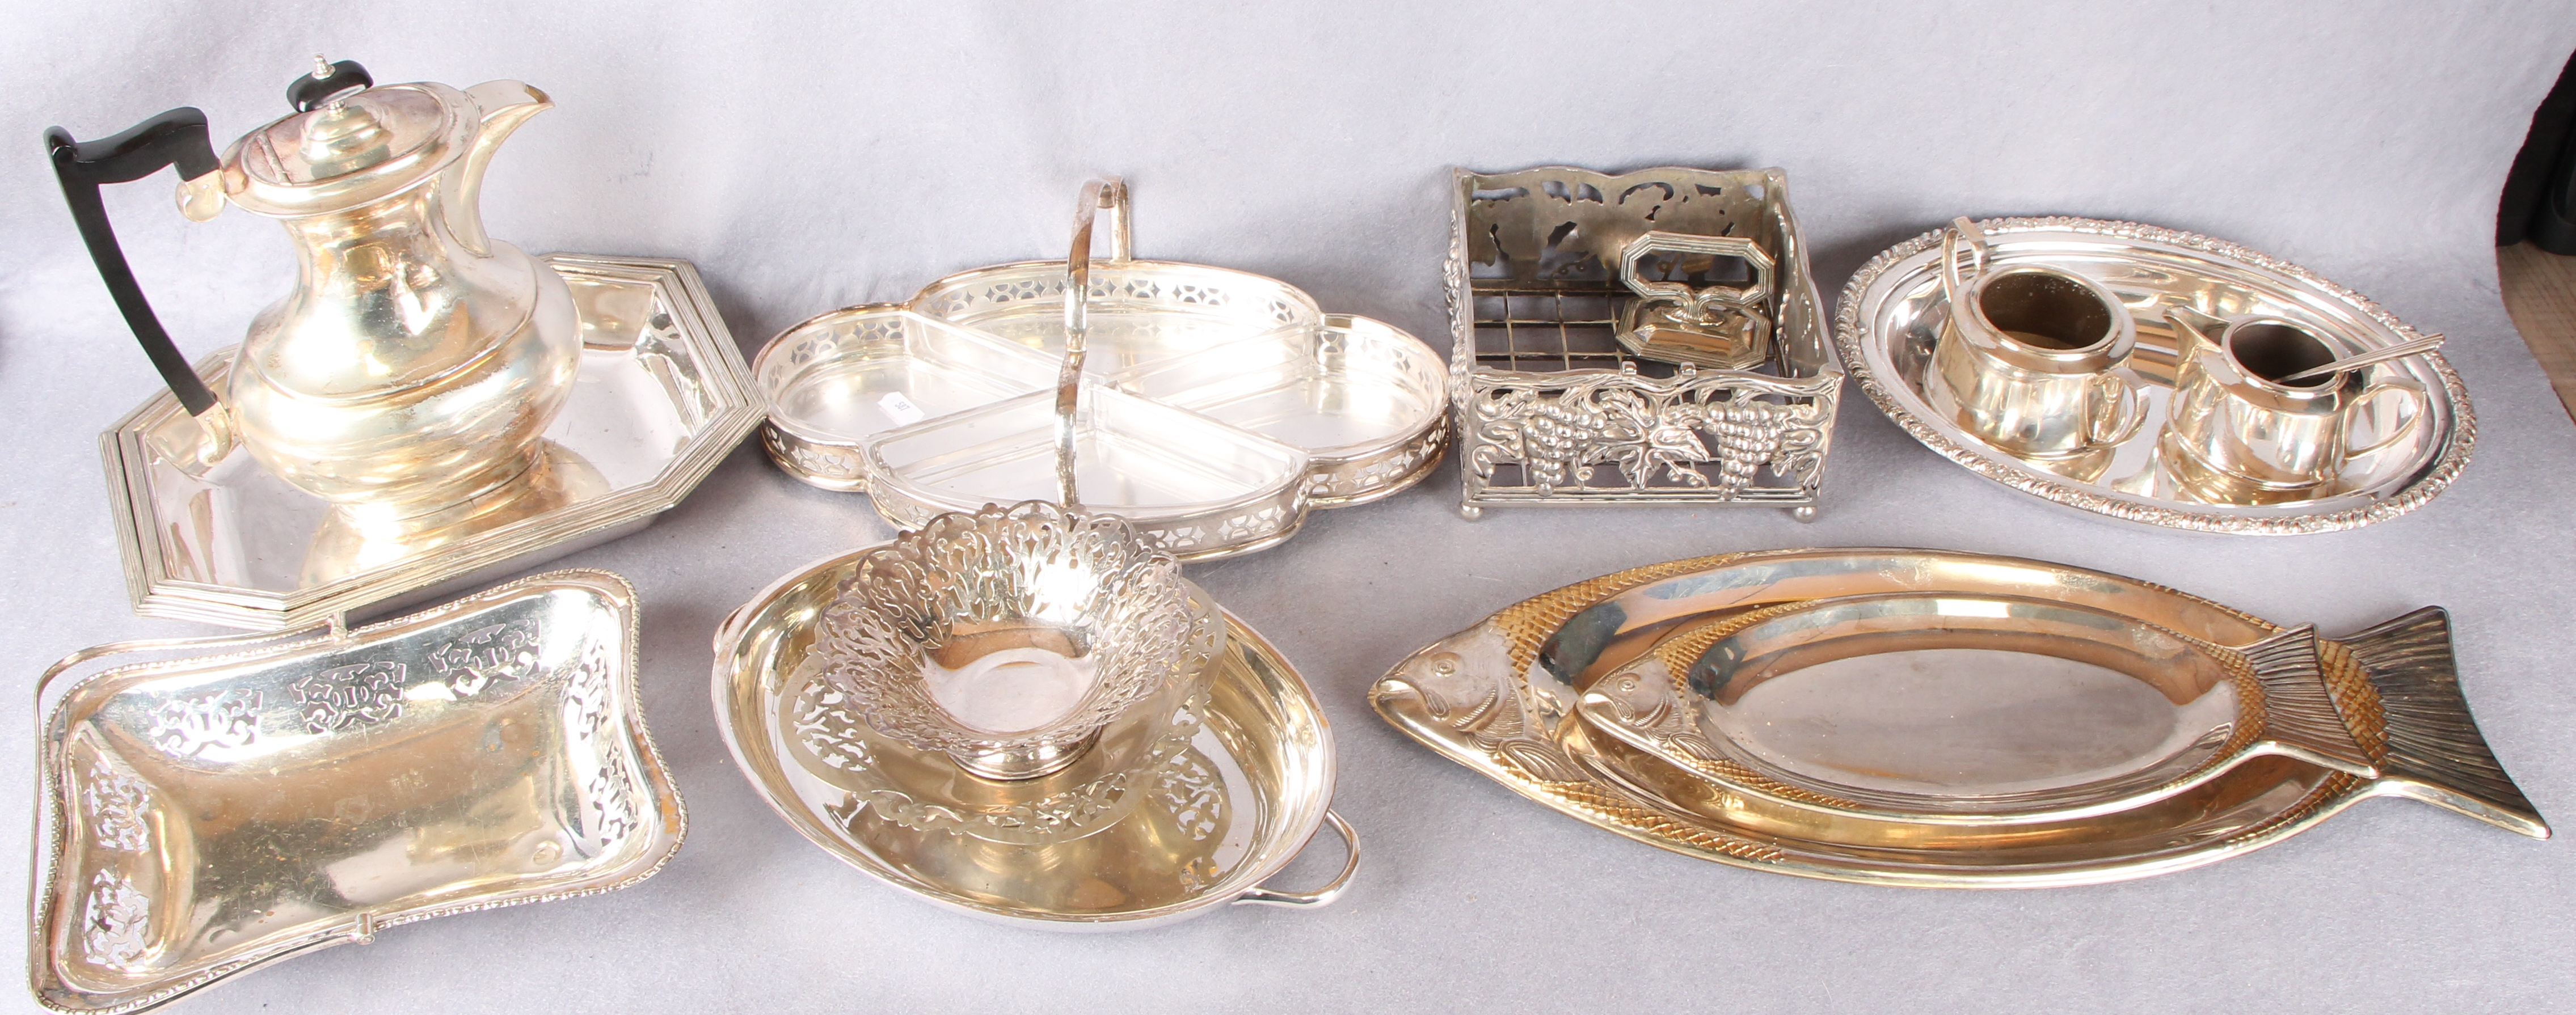 Lot 4 - Two boxes of plated wares including salver, gallery tray, entree dishes, cake baskets,